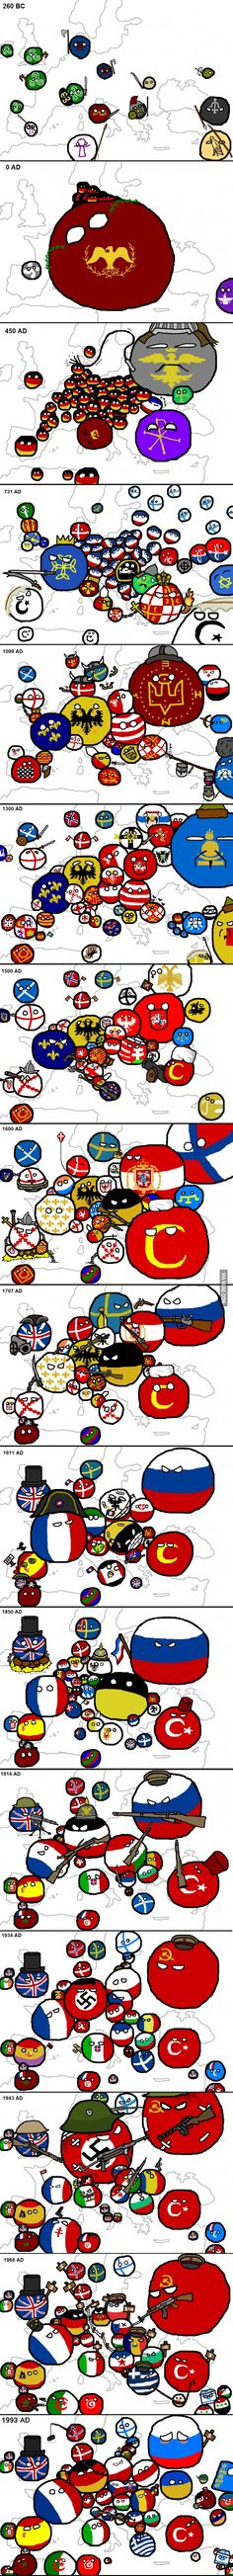 A quick historical lesson about Europe